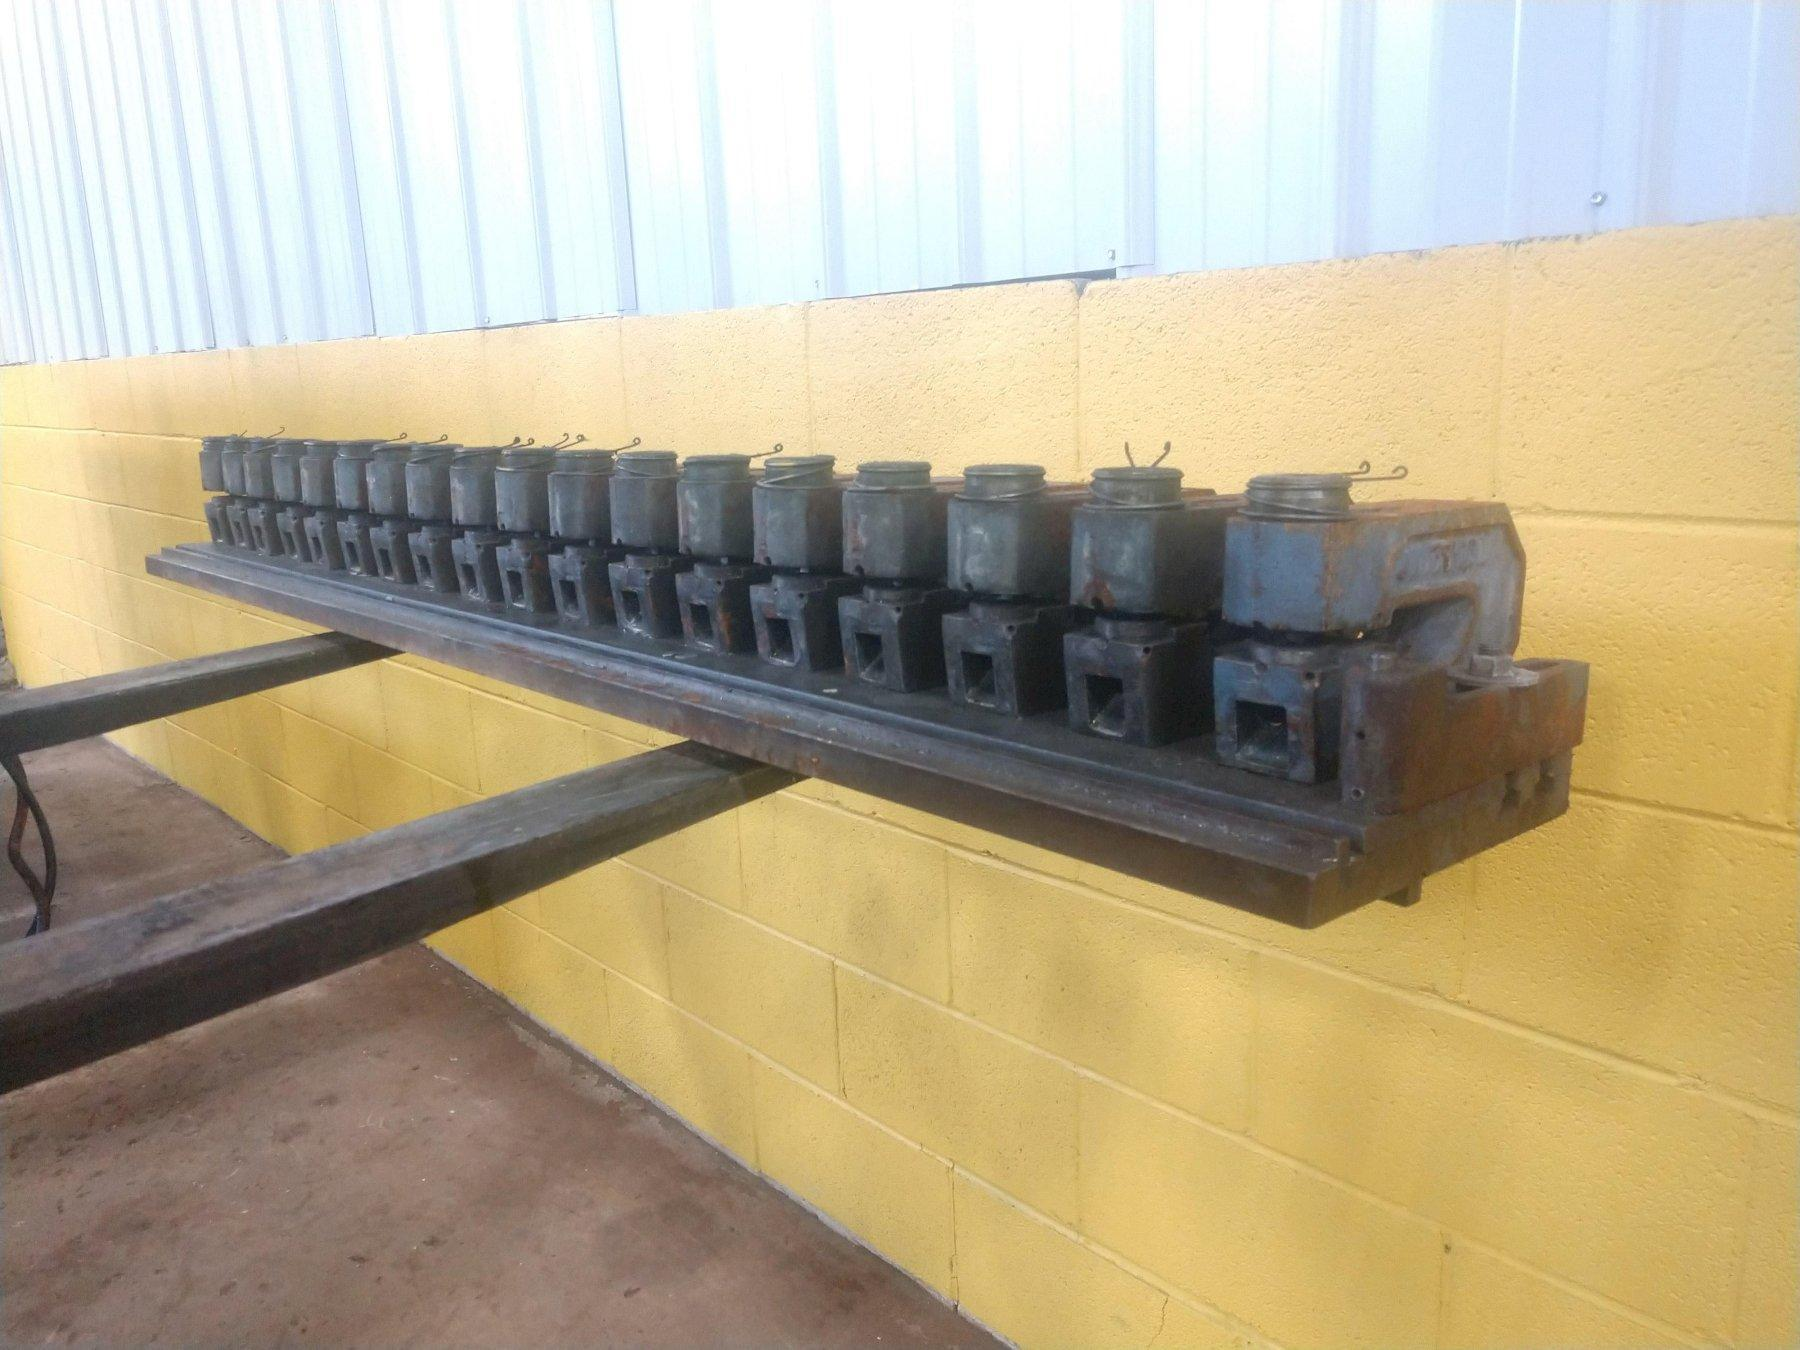 18 UNITTOOL UNI-PUNCHES MOUNTED ON DIE RAIL: STOCK 12720